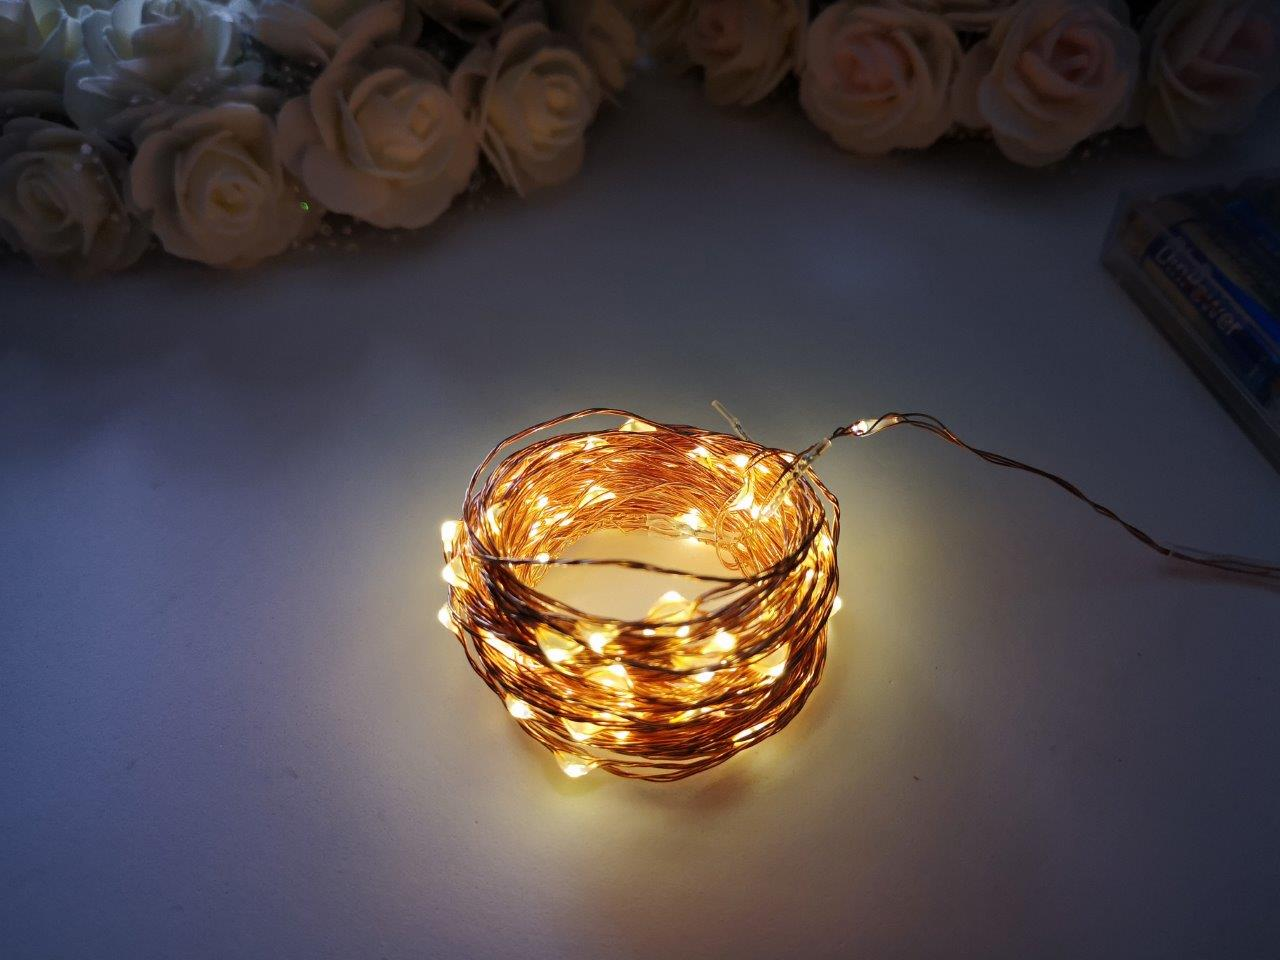 10m Seed Lights Warm White Copper Wire 10m-Seed-Lights-Warm-White-Copper-Wire